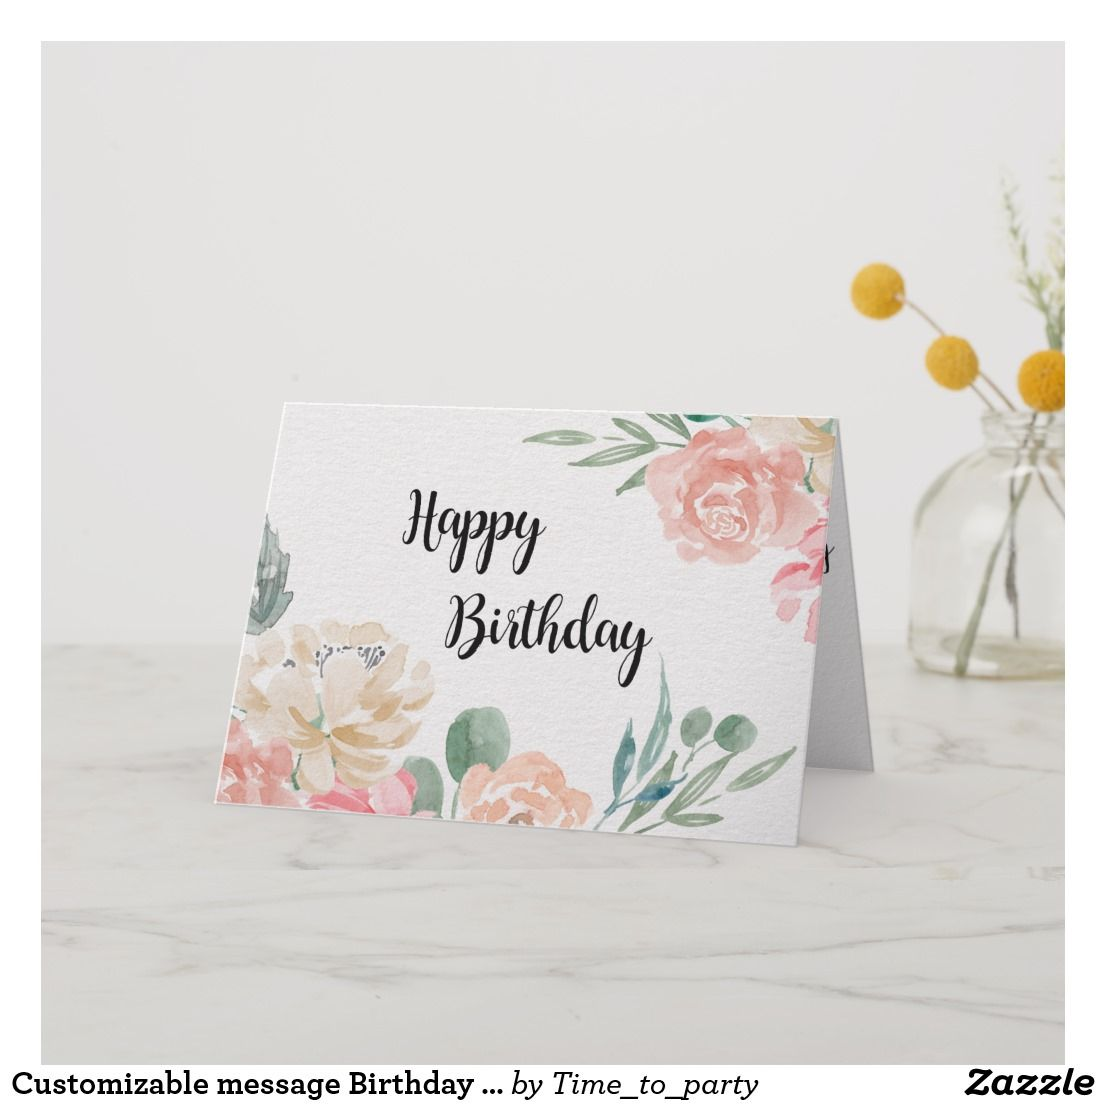 ac5511cb4f03 Customizable message Birthday Card watercolor